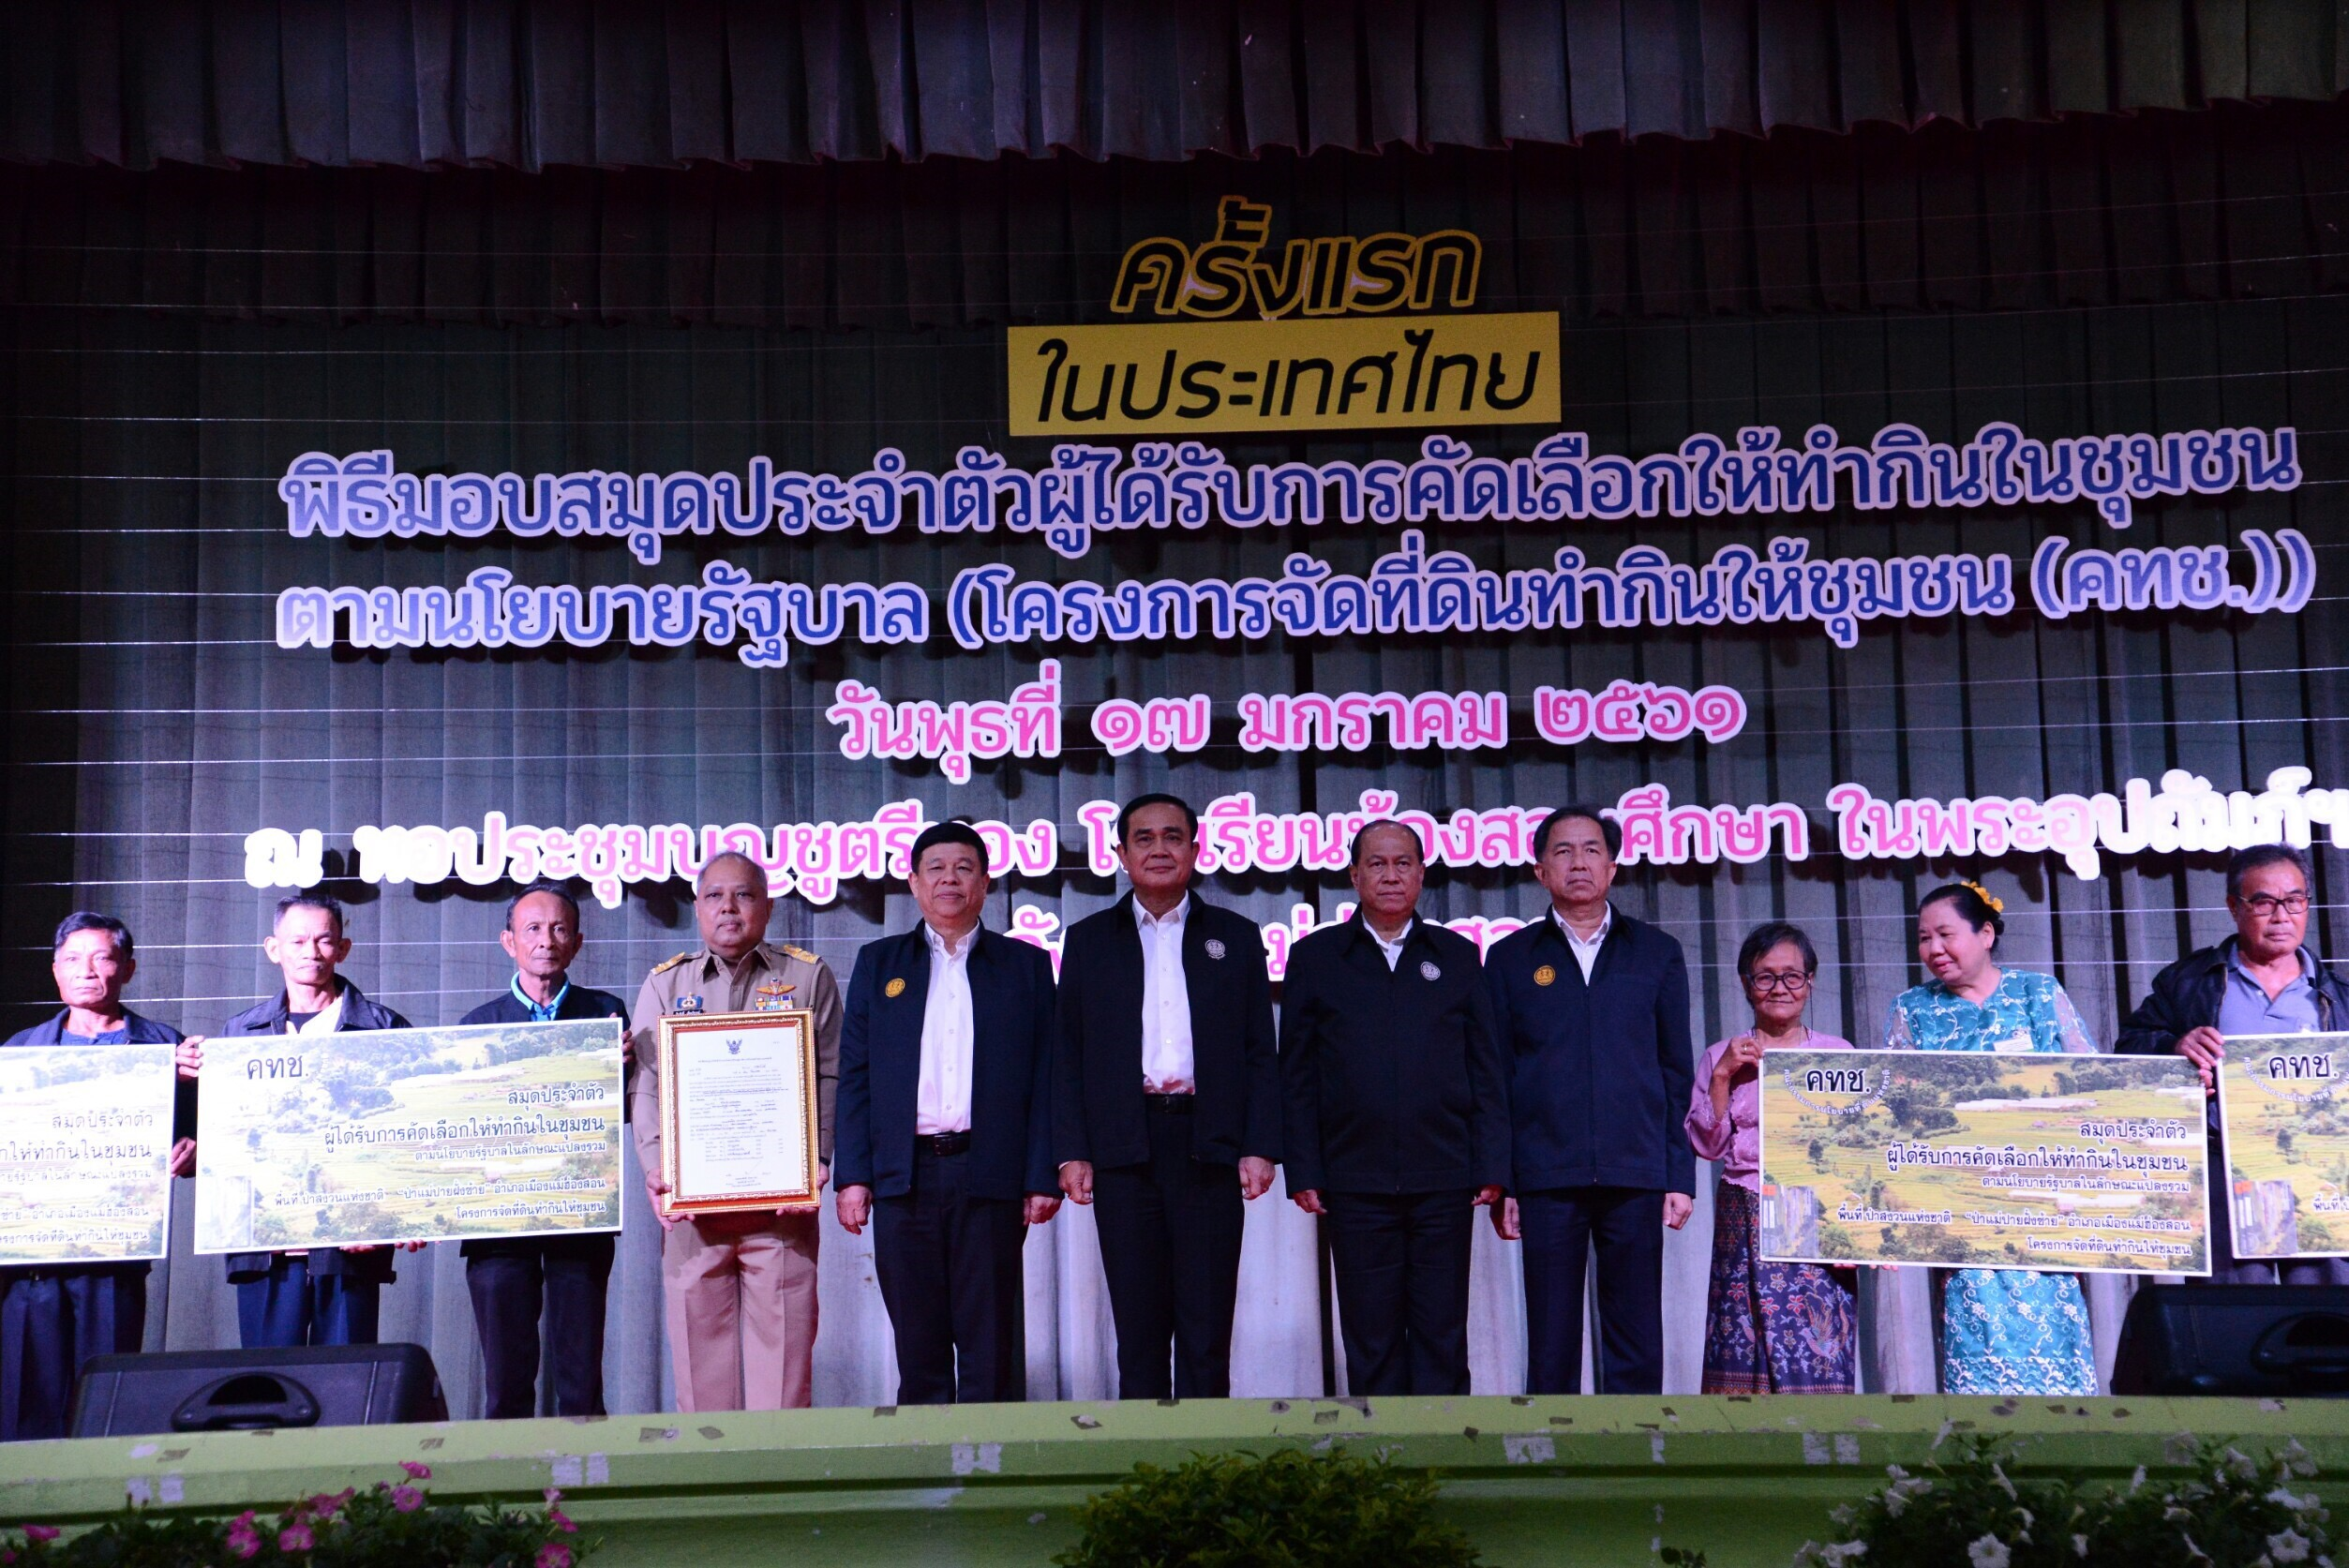 "<a href=""website_en/news/news_detail/WNPOL6101170010006"" target=""_blank"" class=""fontbold font14"" style=""line-height: 1.5em;"">PM leads Cabinet members to Mae Hong Son</a>